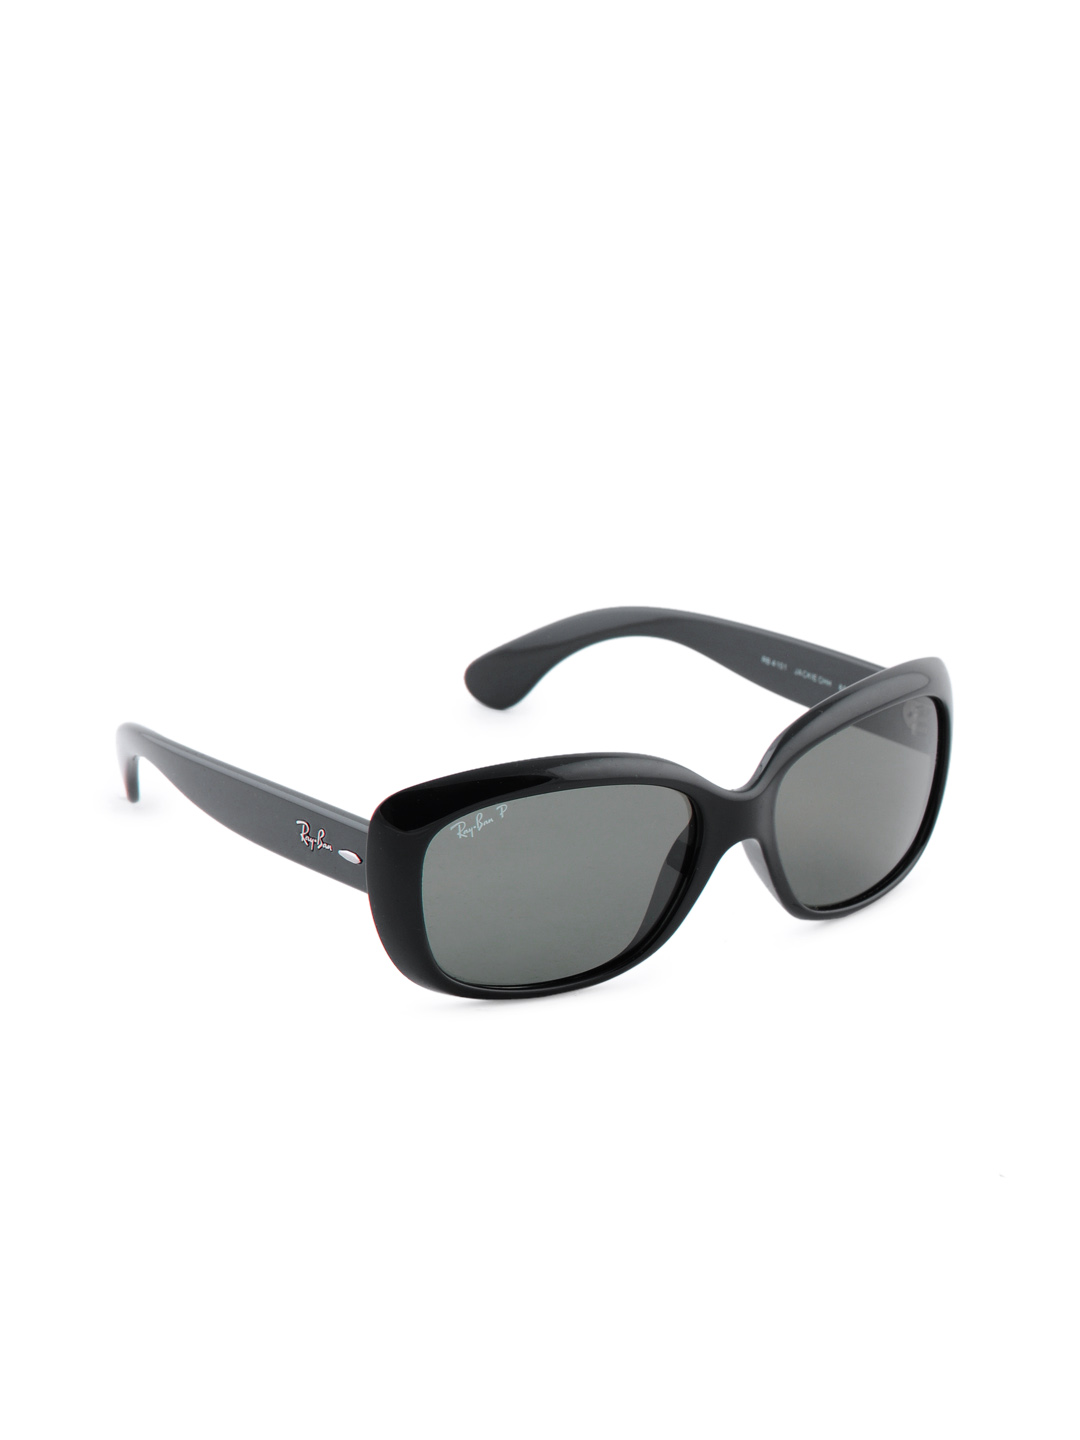 Ray-Ban Women Jackie Sunglasses